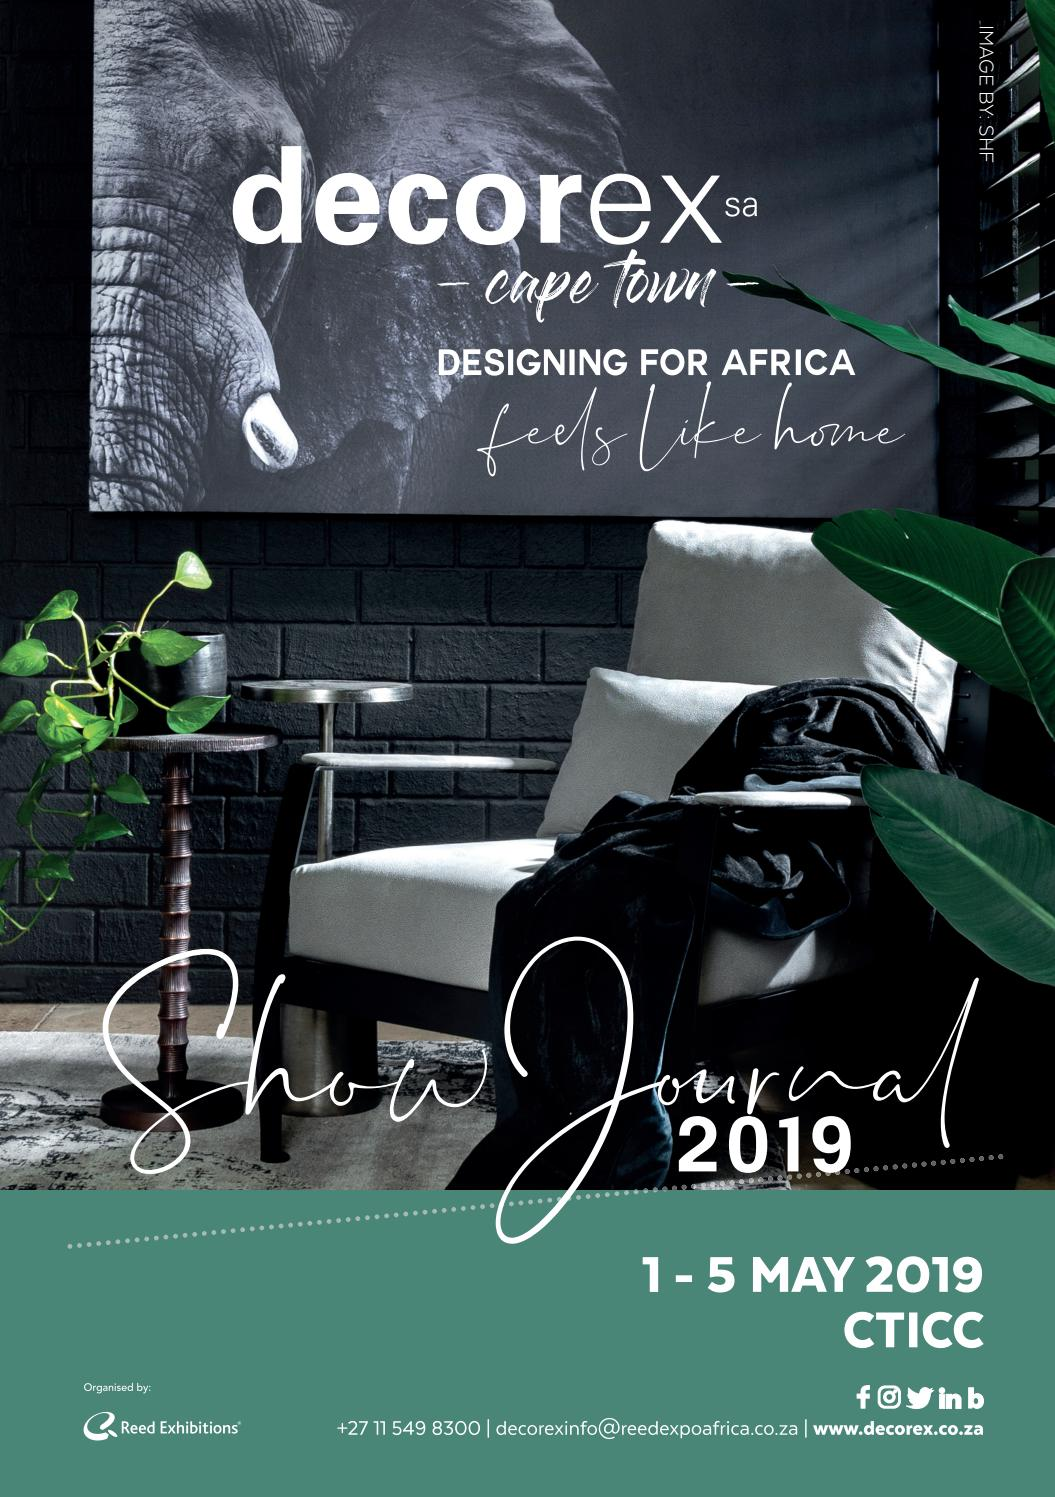 Decorex Cape Town Show Journal by Decorex SA - issuu